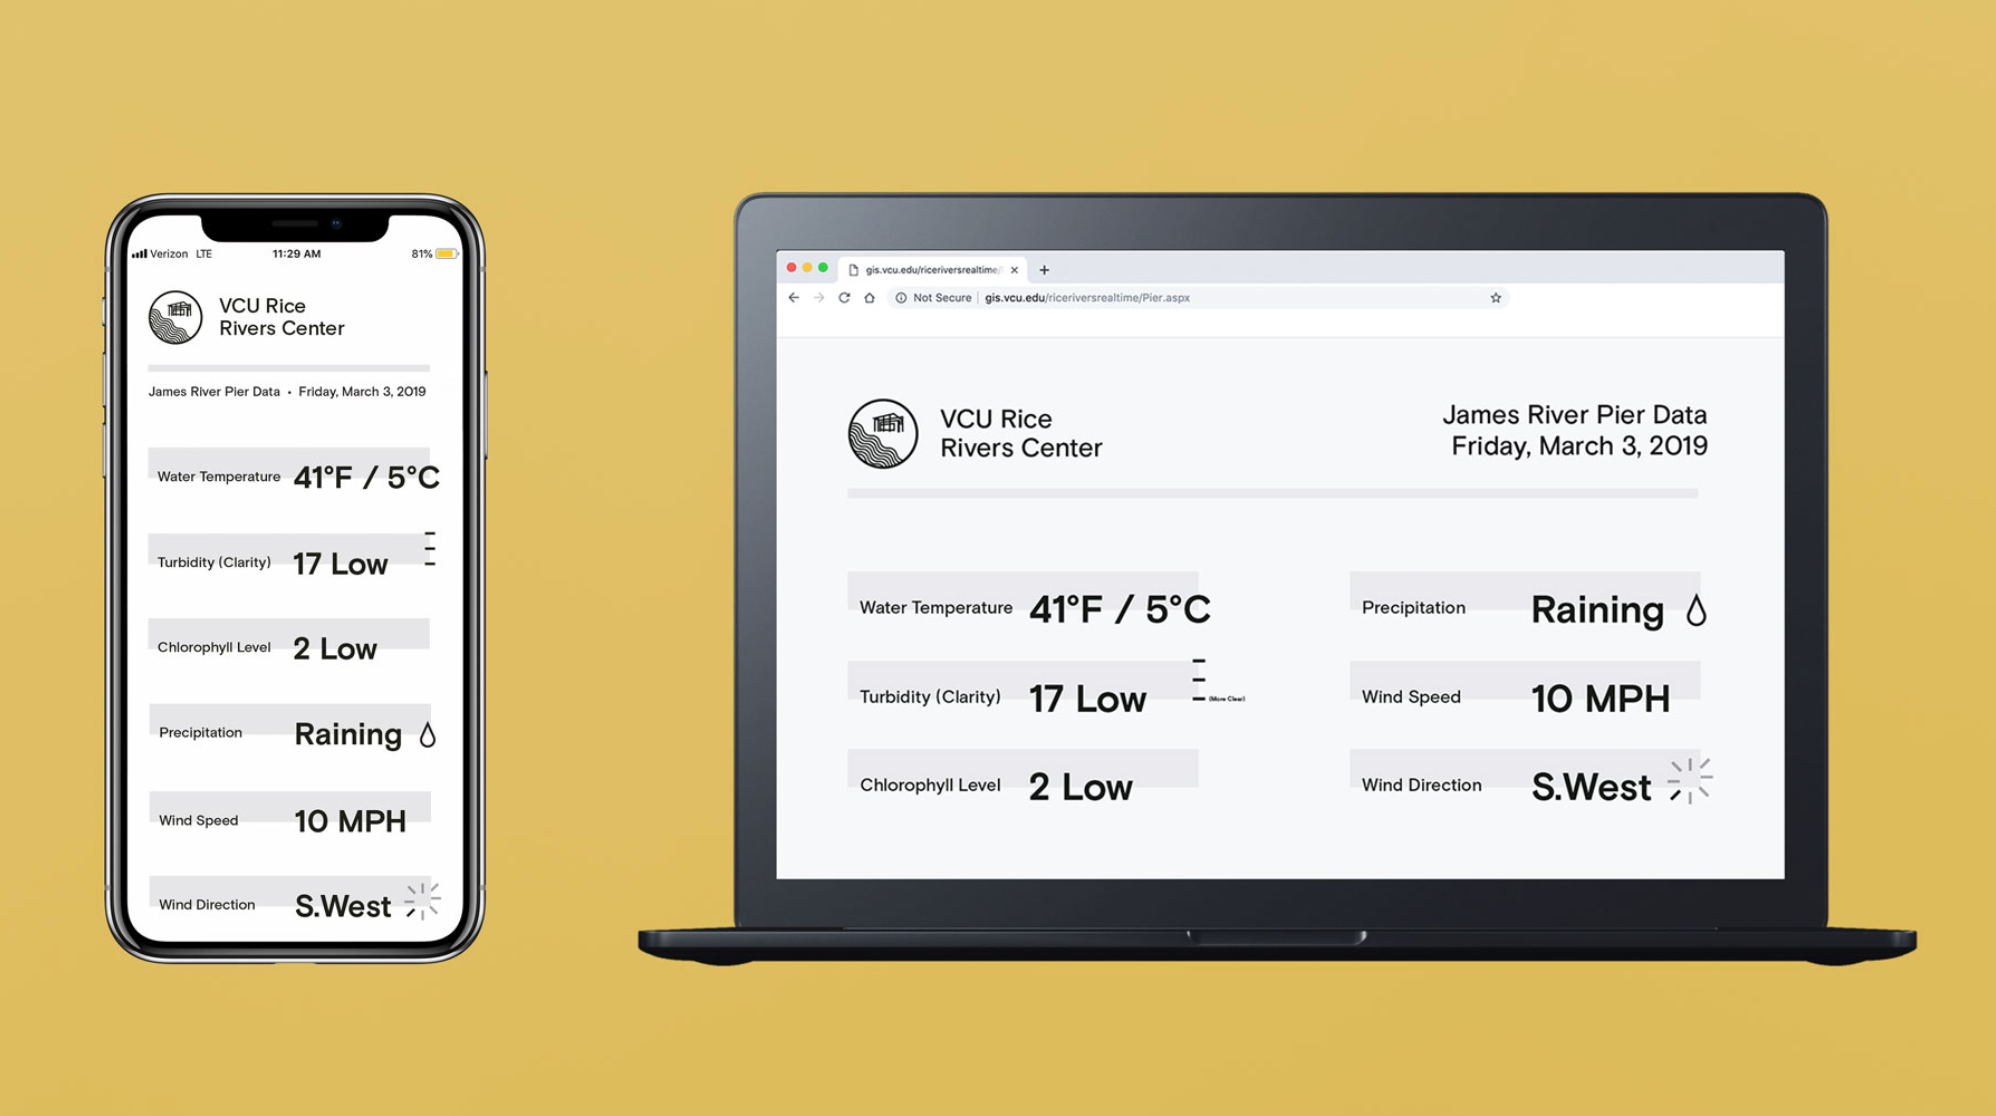 Our simplified data dashboard